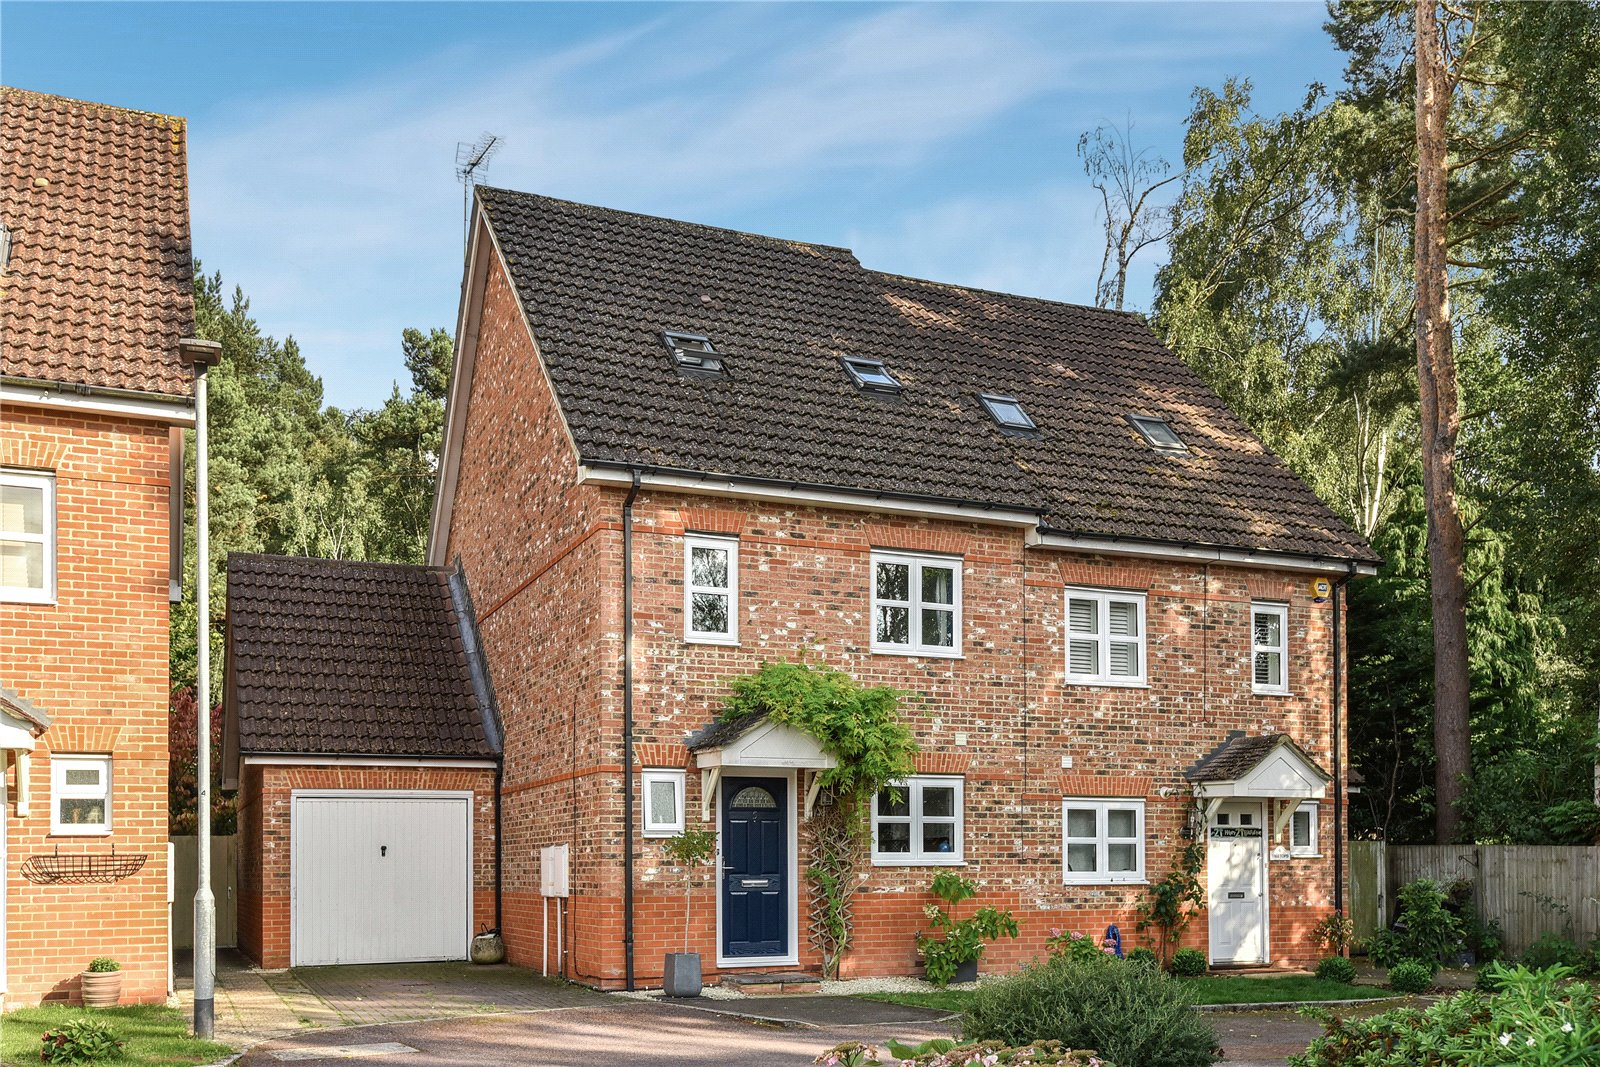 4 Bedrooms Semi Detached House for sale in Brakes Rise, College Town, Sandhurst, Berkshire, GU47